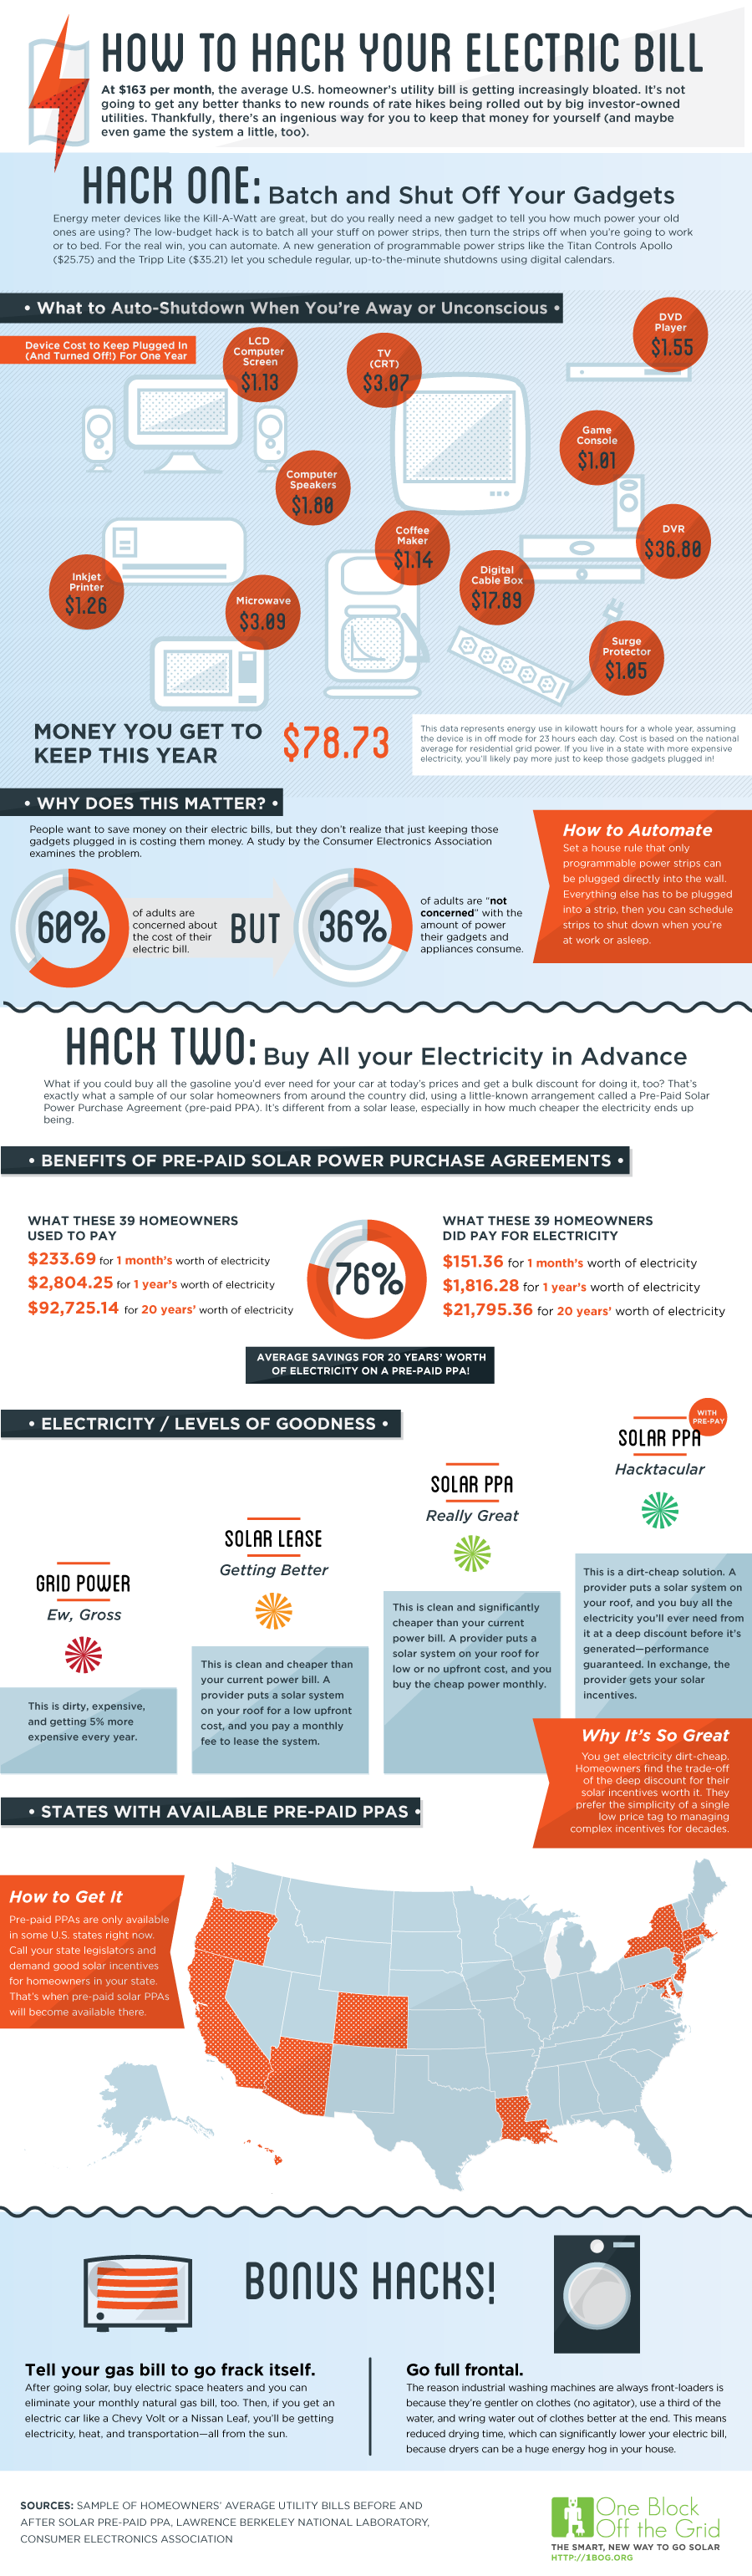 Electric Bill Hack-infographic